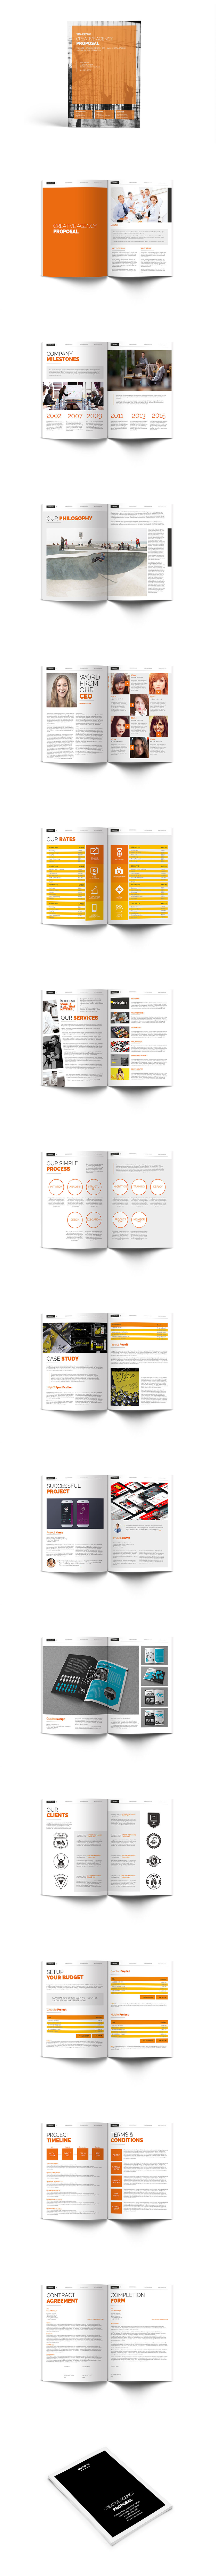 Creative agency proposal template indesign indd 38 pages creative agency proposal template indesign indd 38 pages maxwellsz